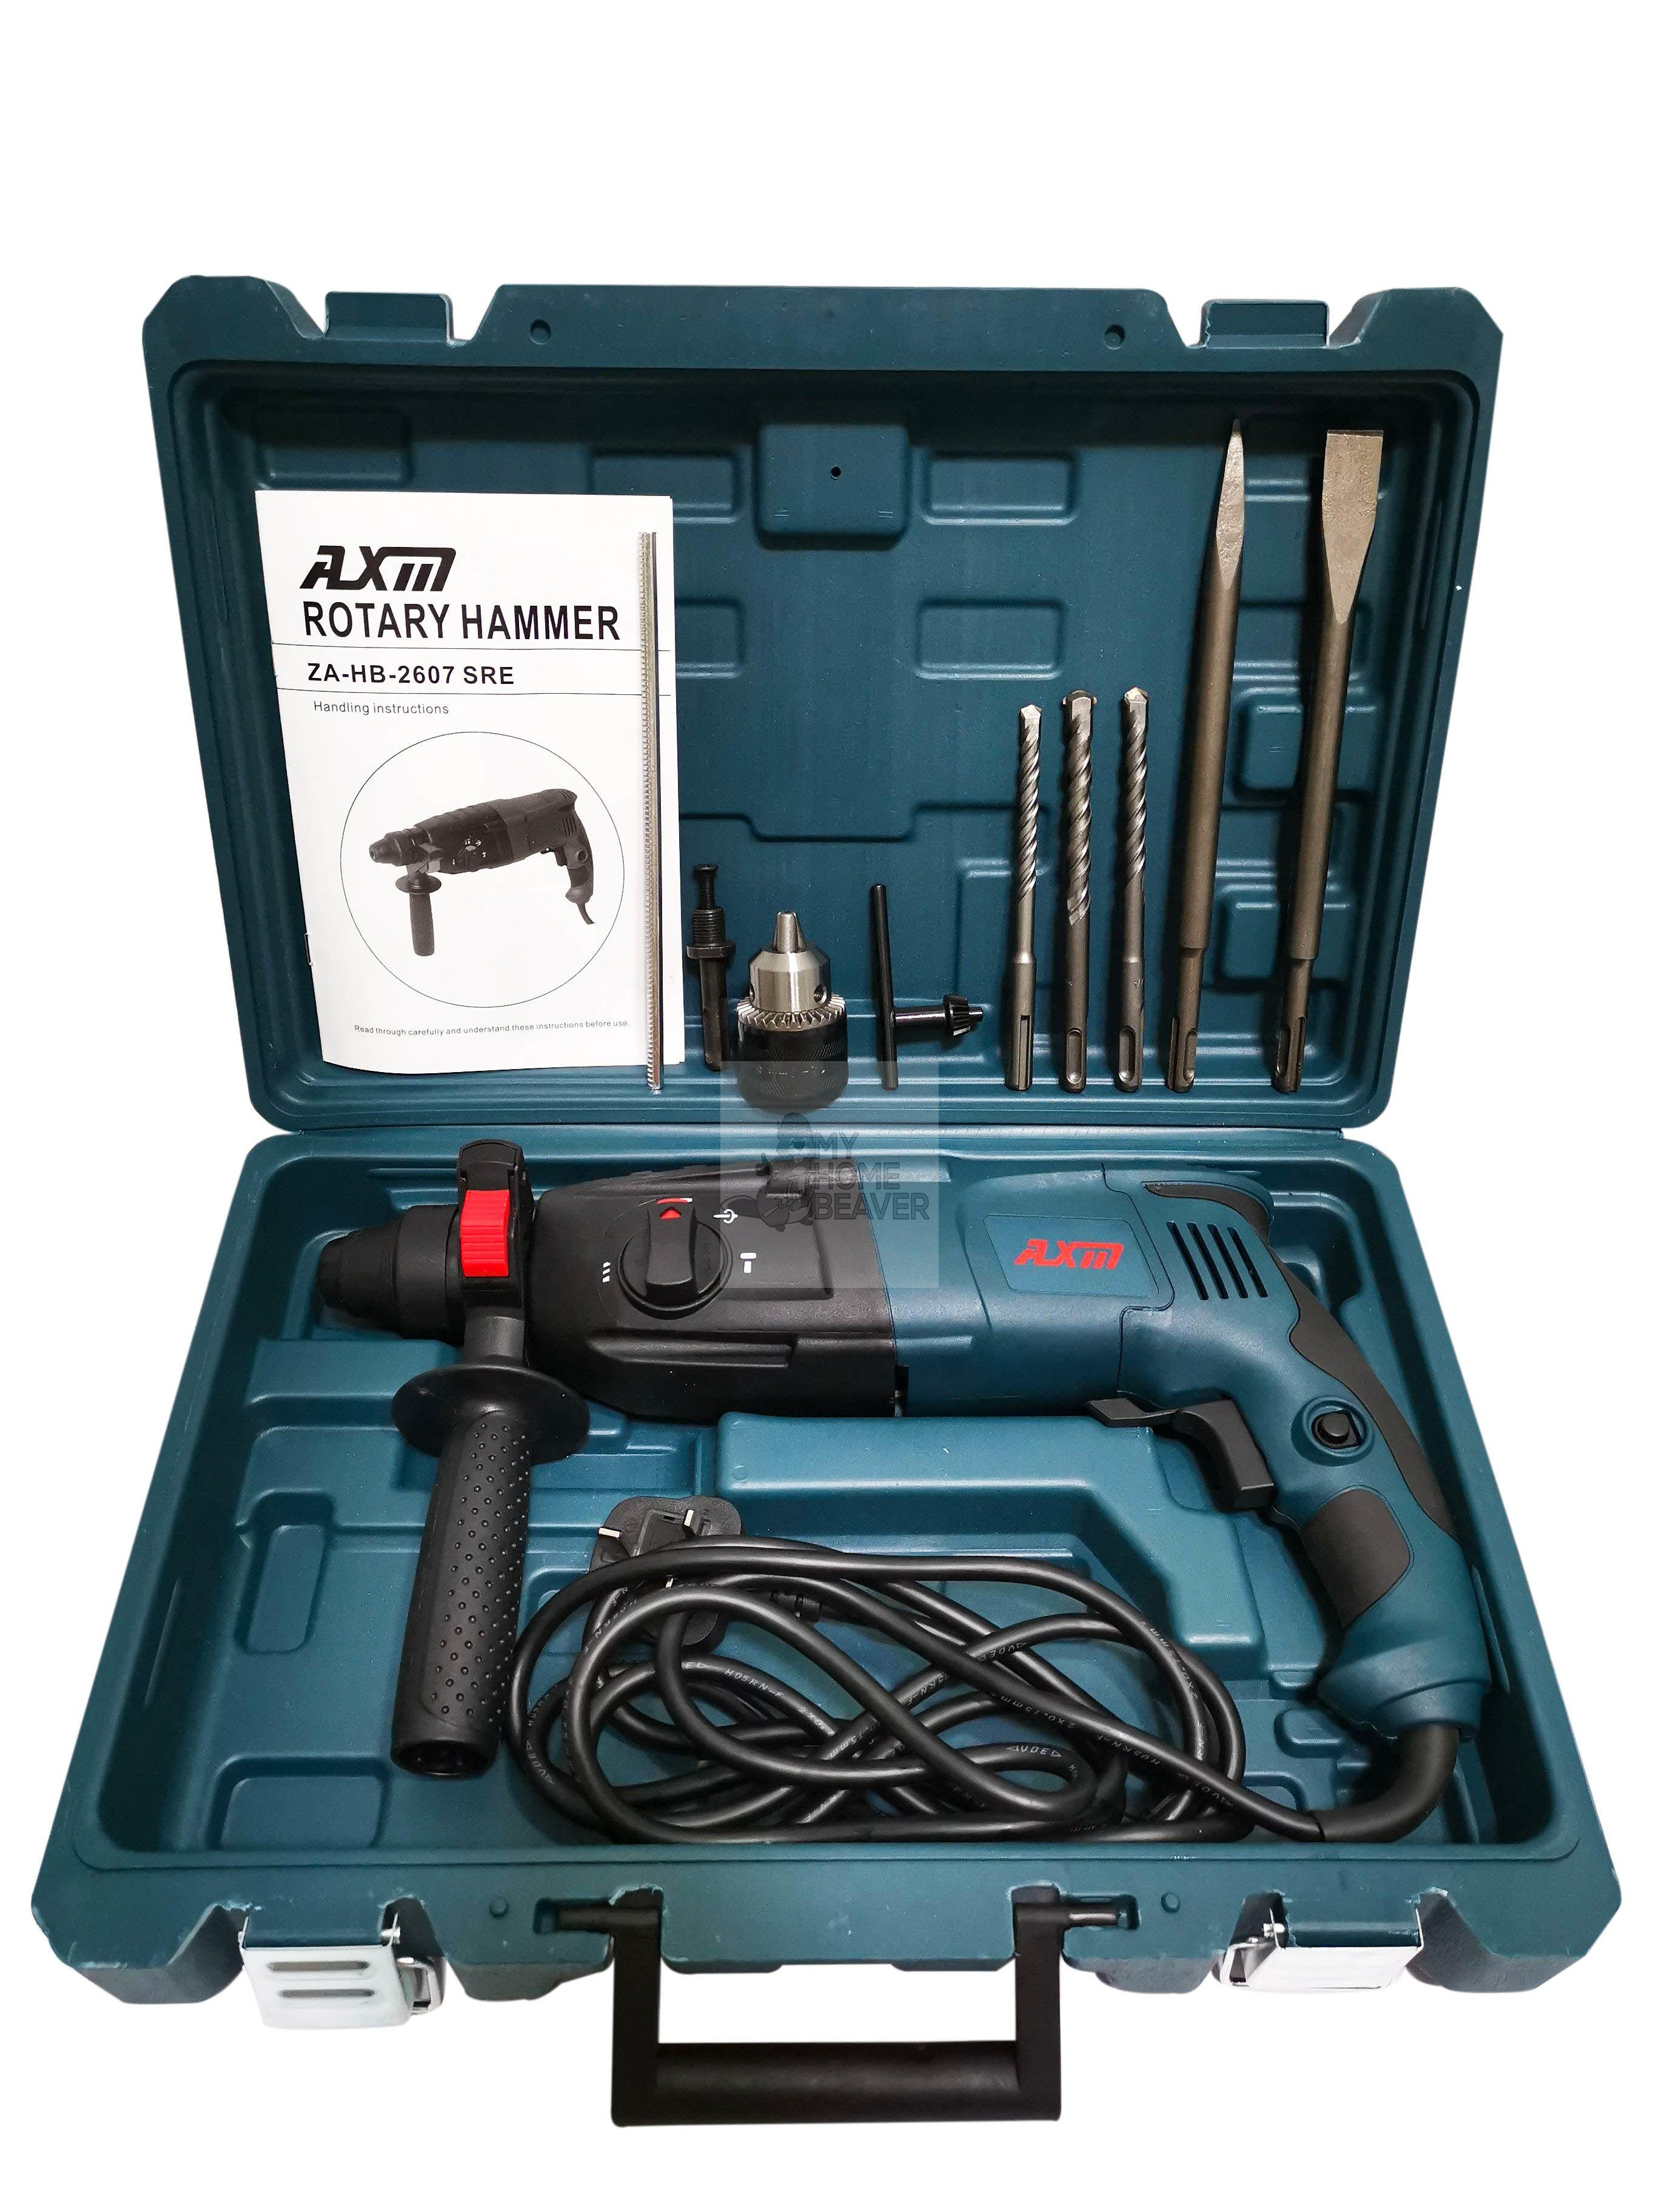 AXM 26 mm Rotary Hammer Drill 800W [Z1A-HB-2607 SRE] with Accessories